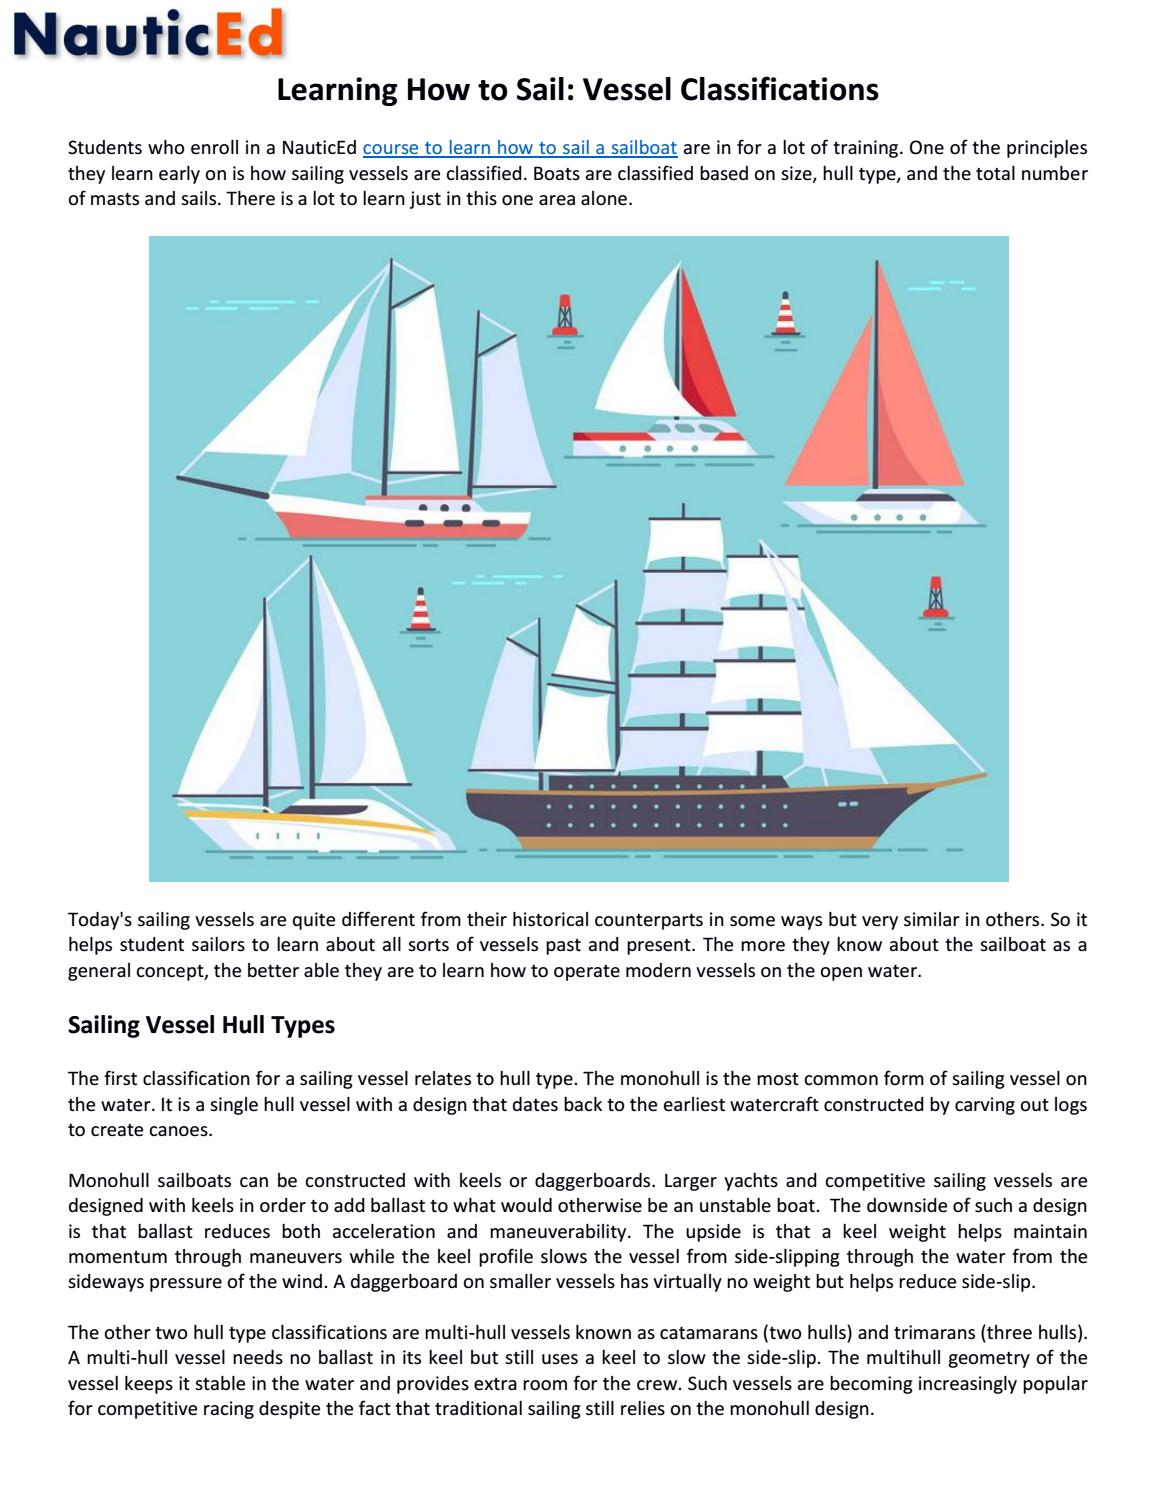 Learning How to Sail: Vessel Classifications by